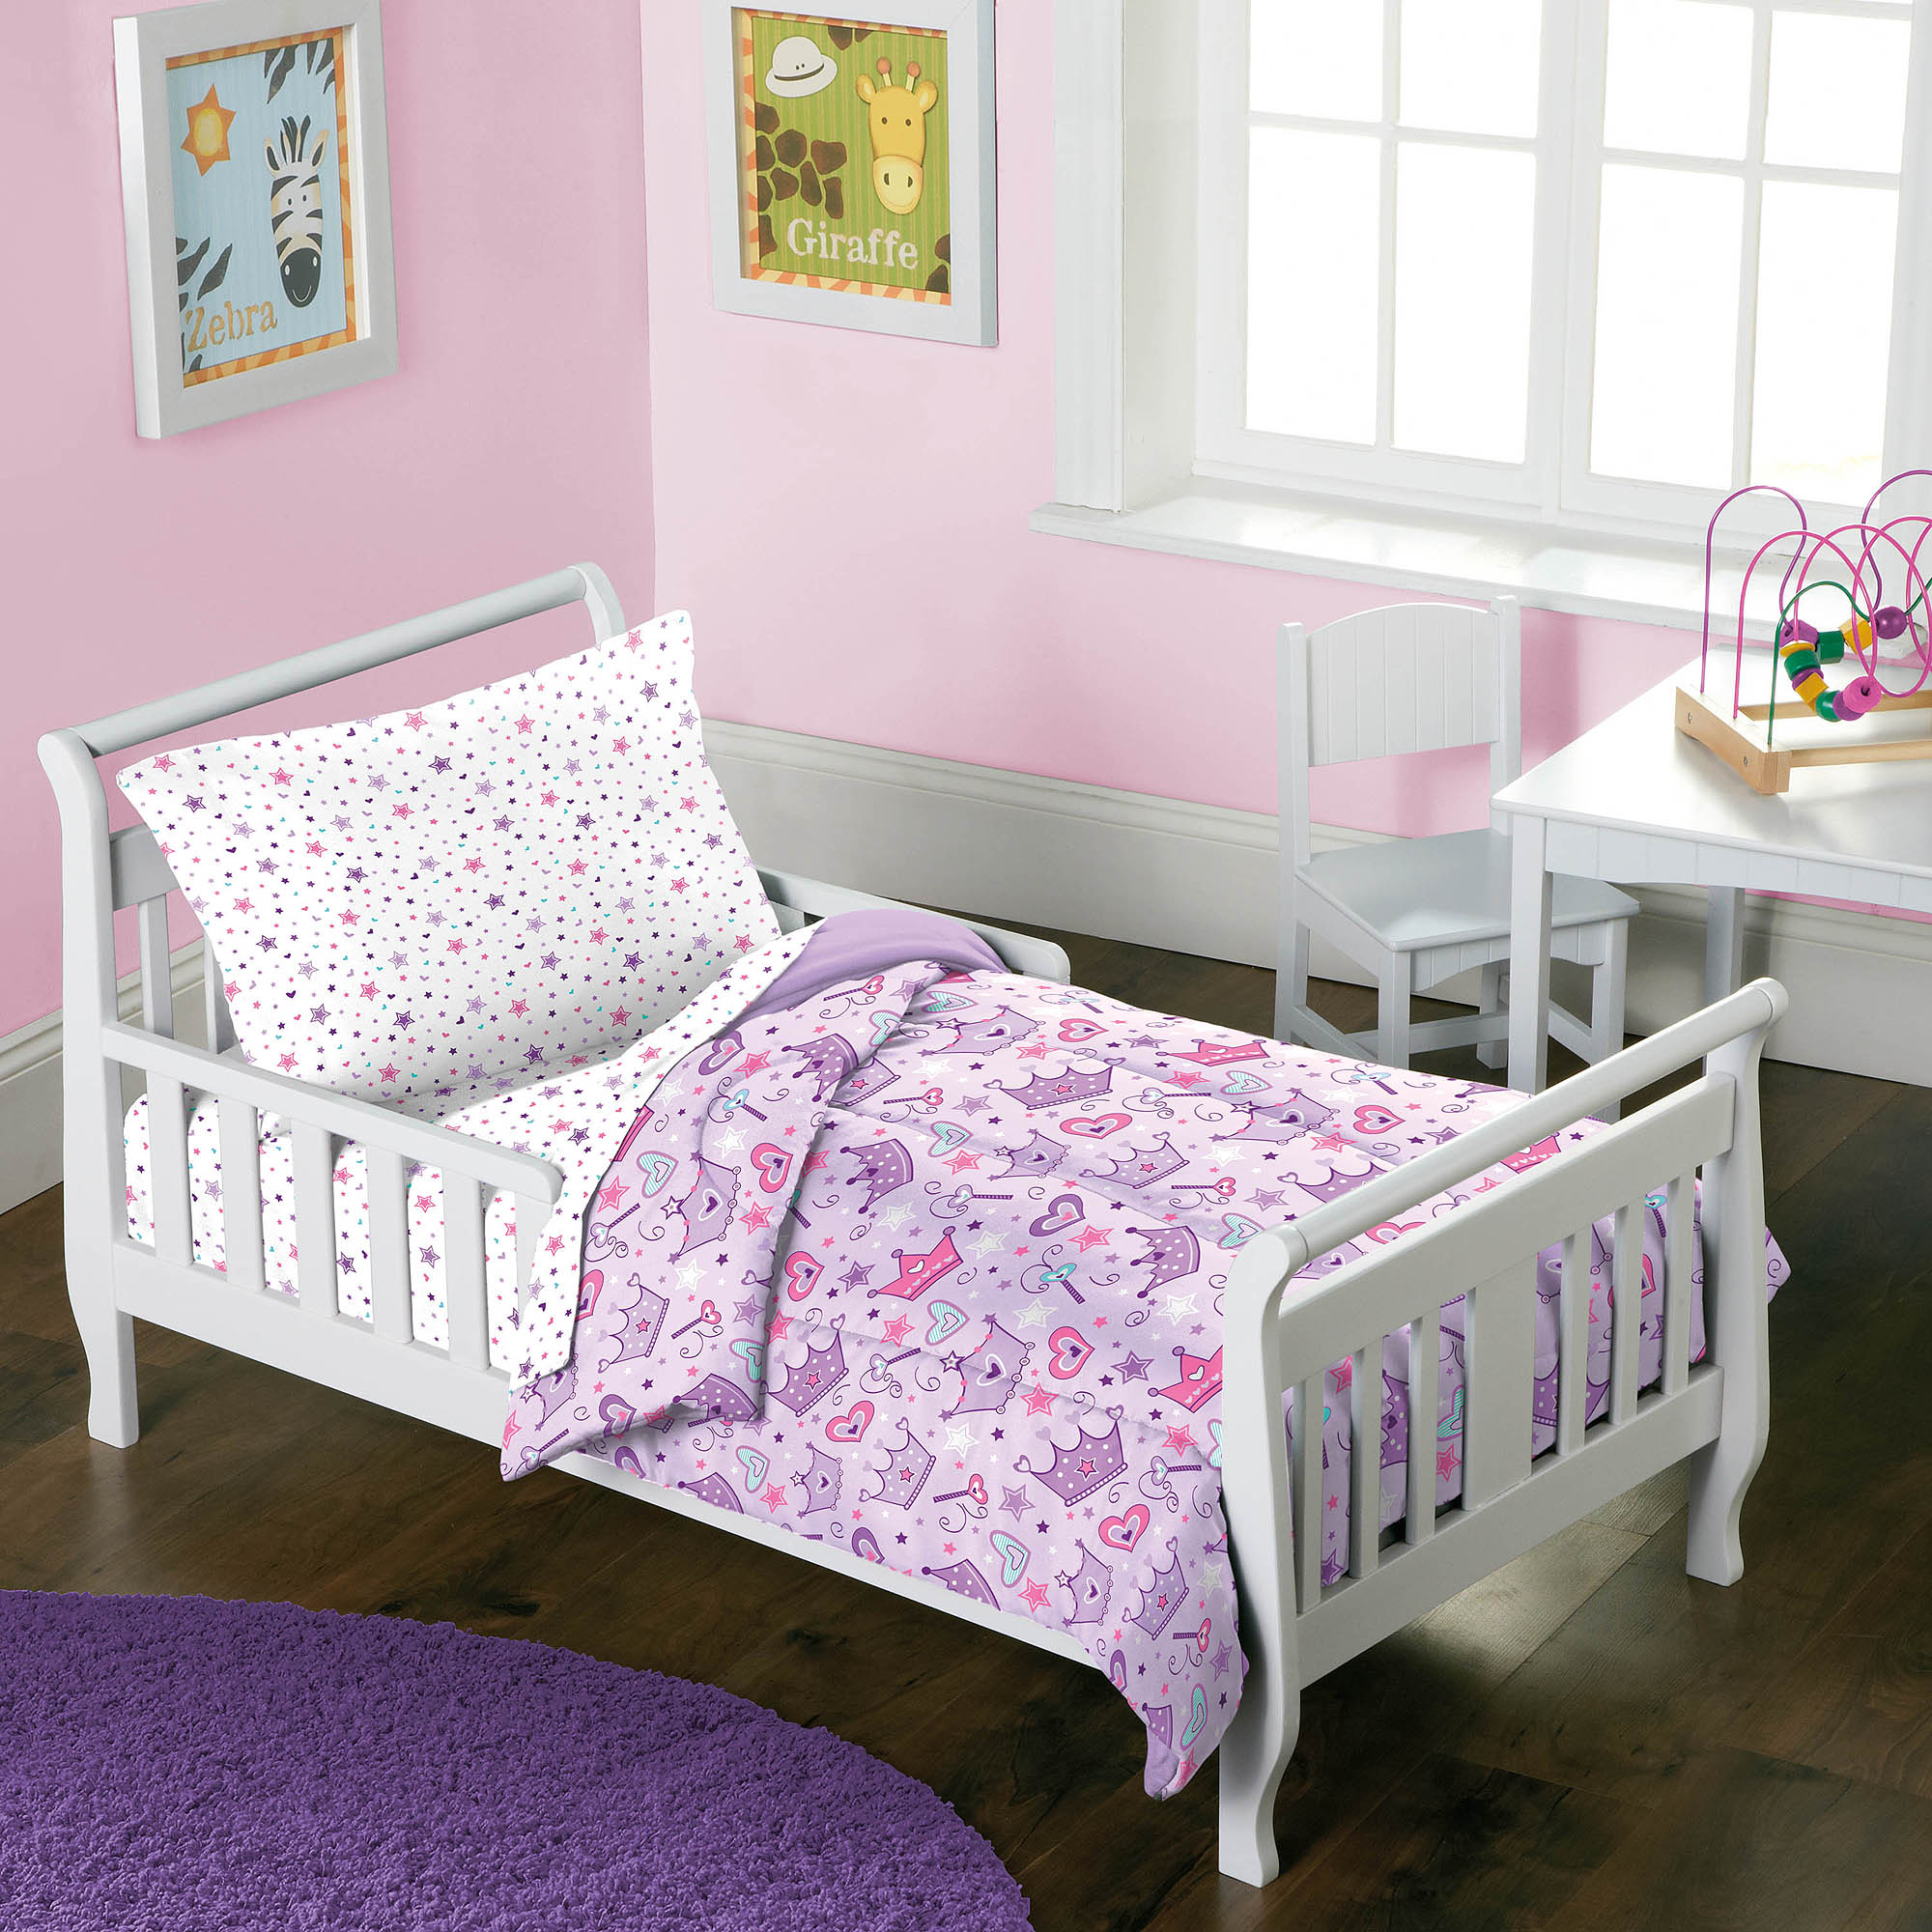 Dream Factory Stars & Crowns 4-Piece Toddler Bed in a Bag Bedding Set